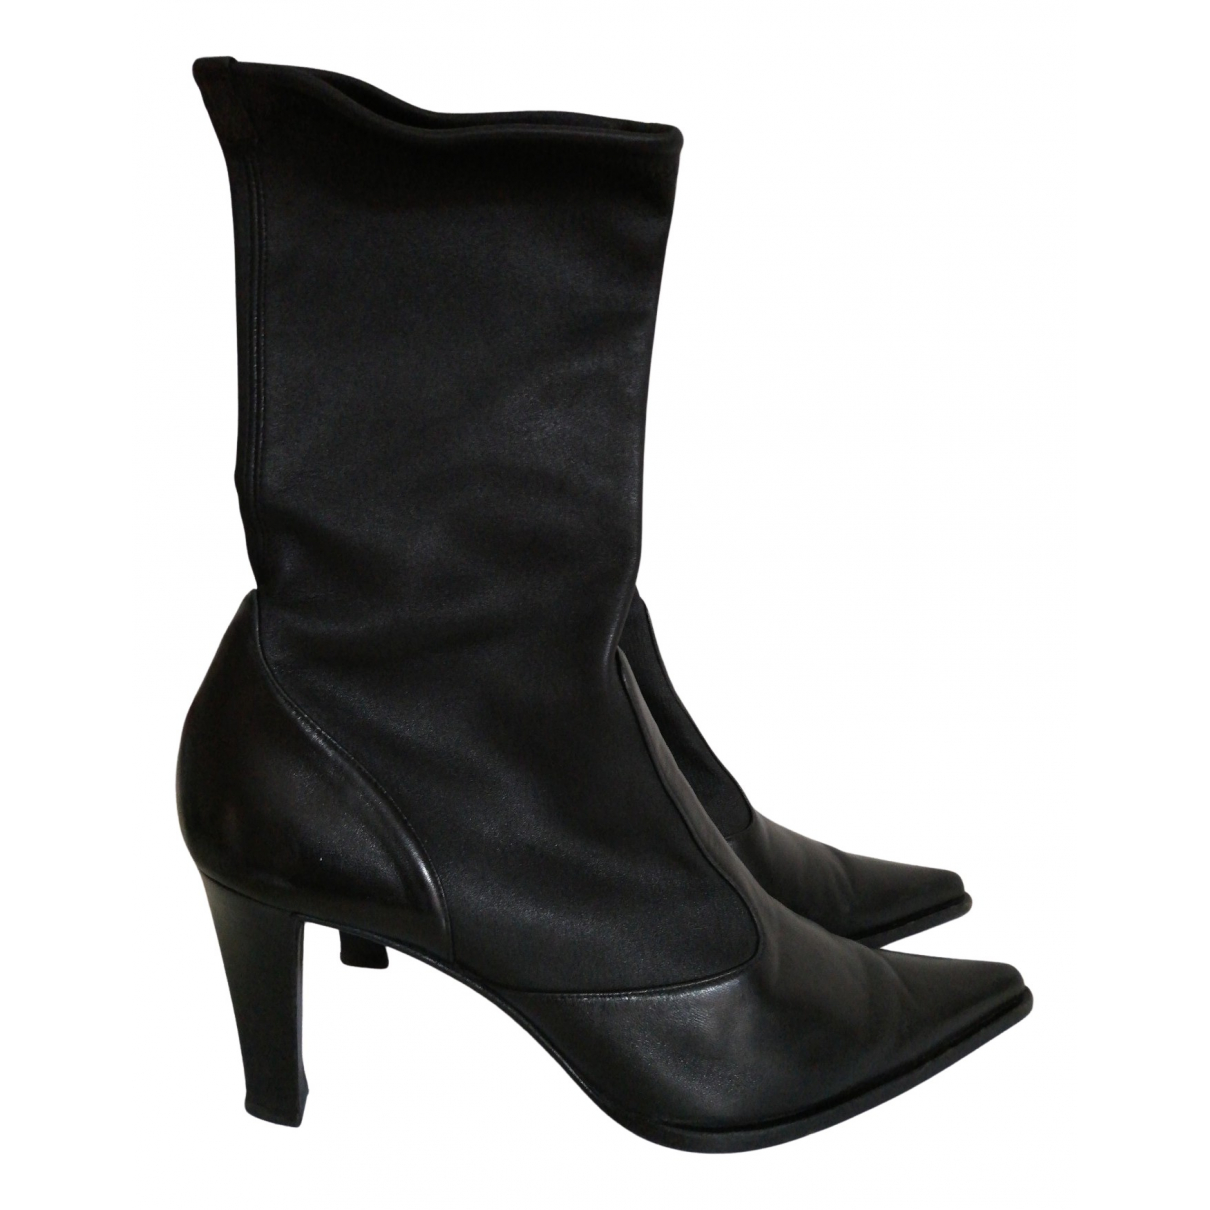 Sergio Rossi N Black Leather Ankle boots for Women 40 EU